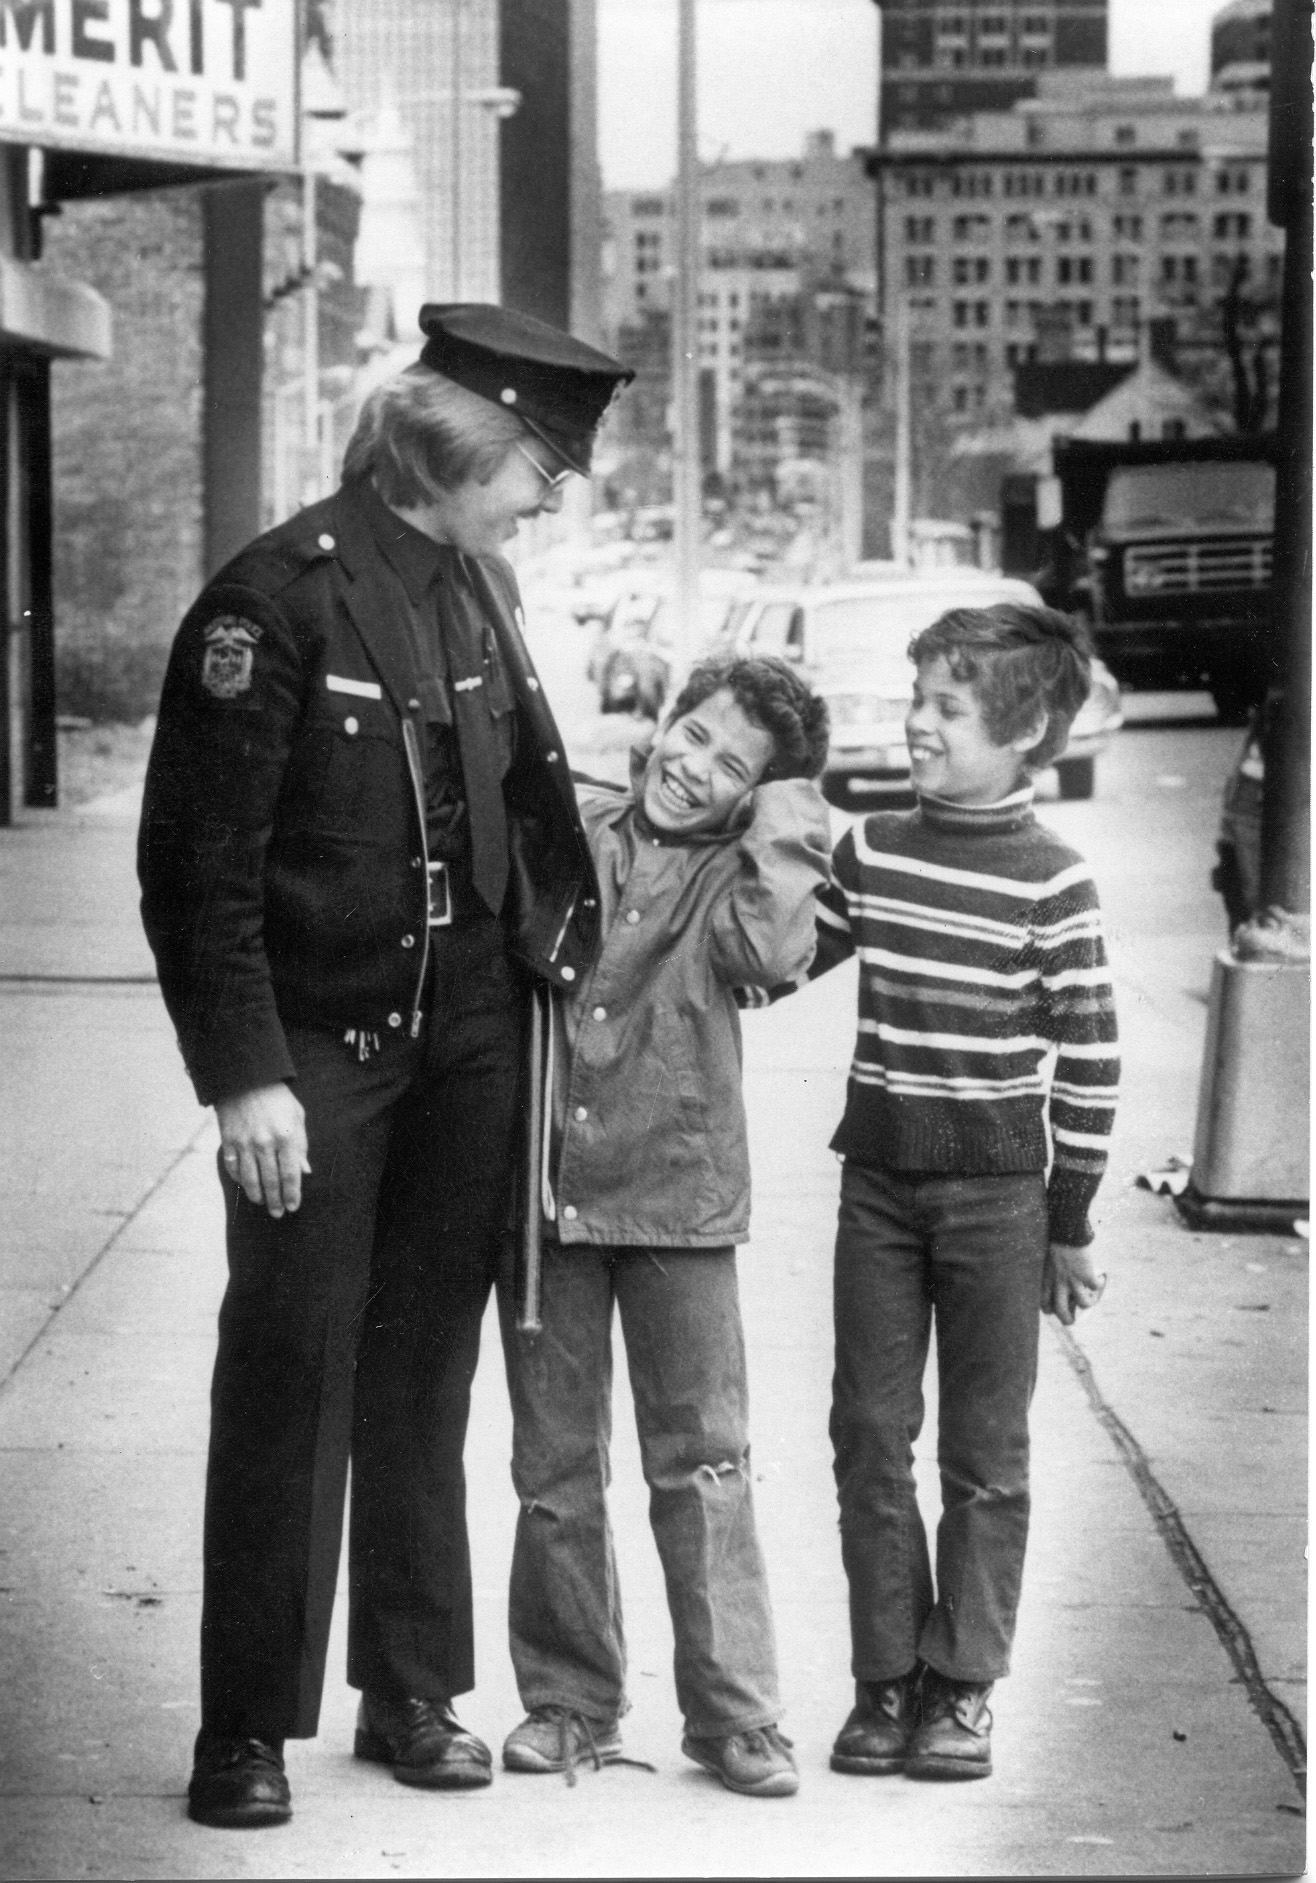 Officer with kids